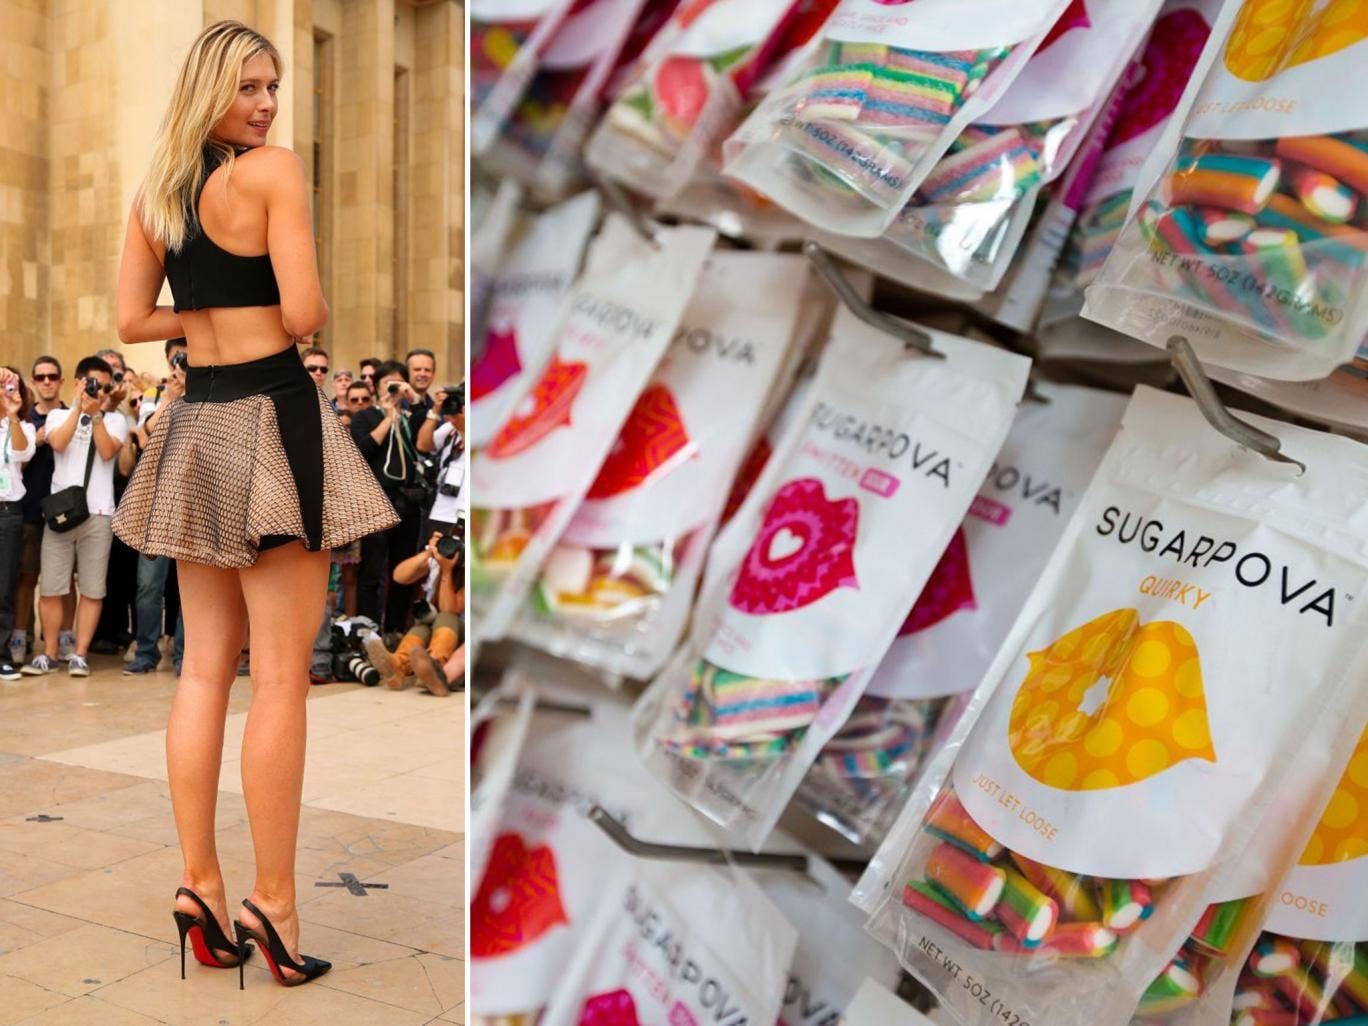 Love all: Fans fall for candy in the Sugarpova Candy Lounge, in Wimbledon for the duration of the tennis championships